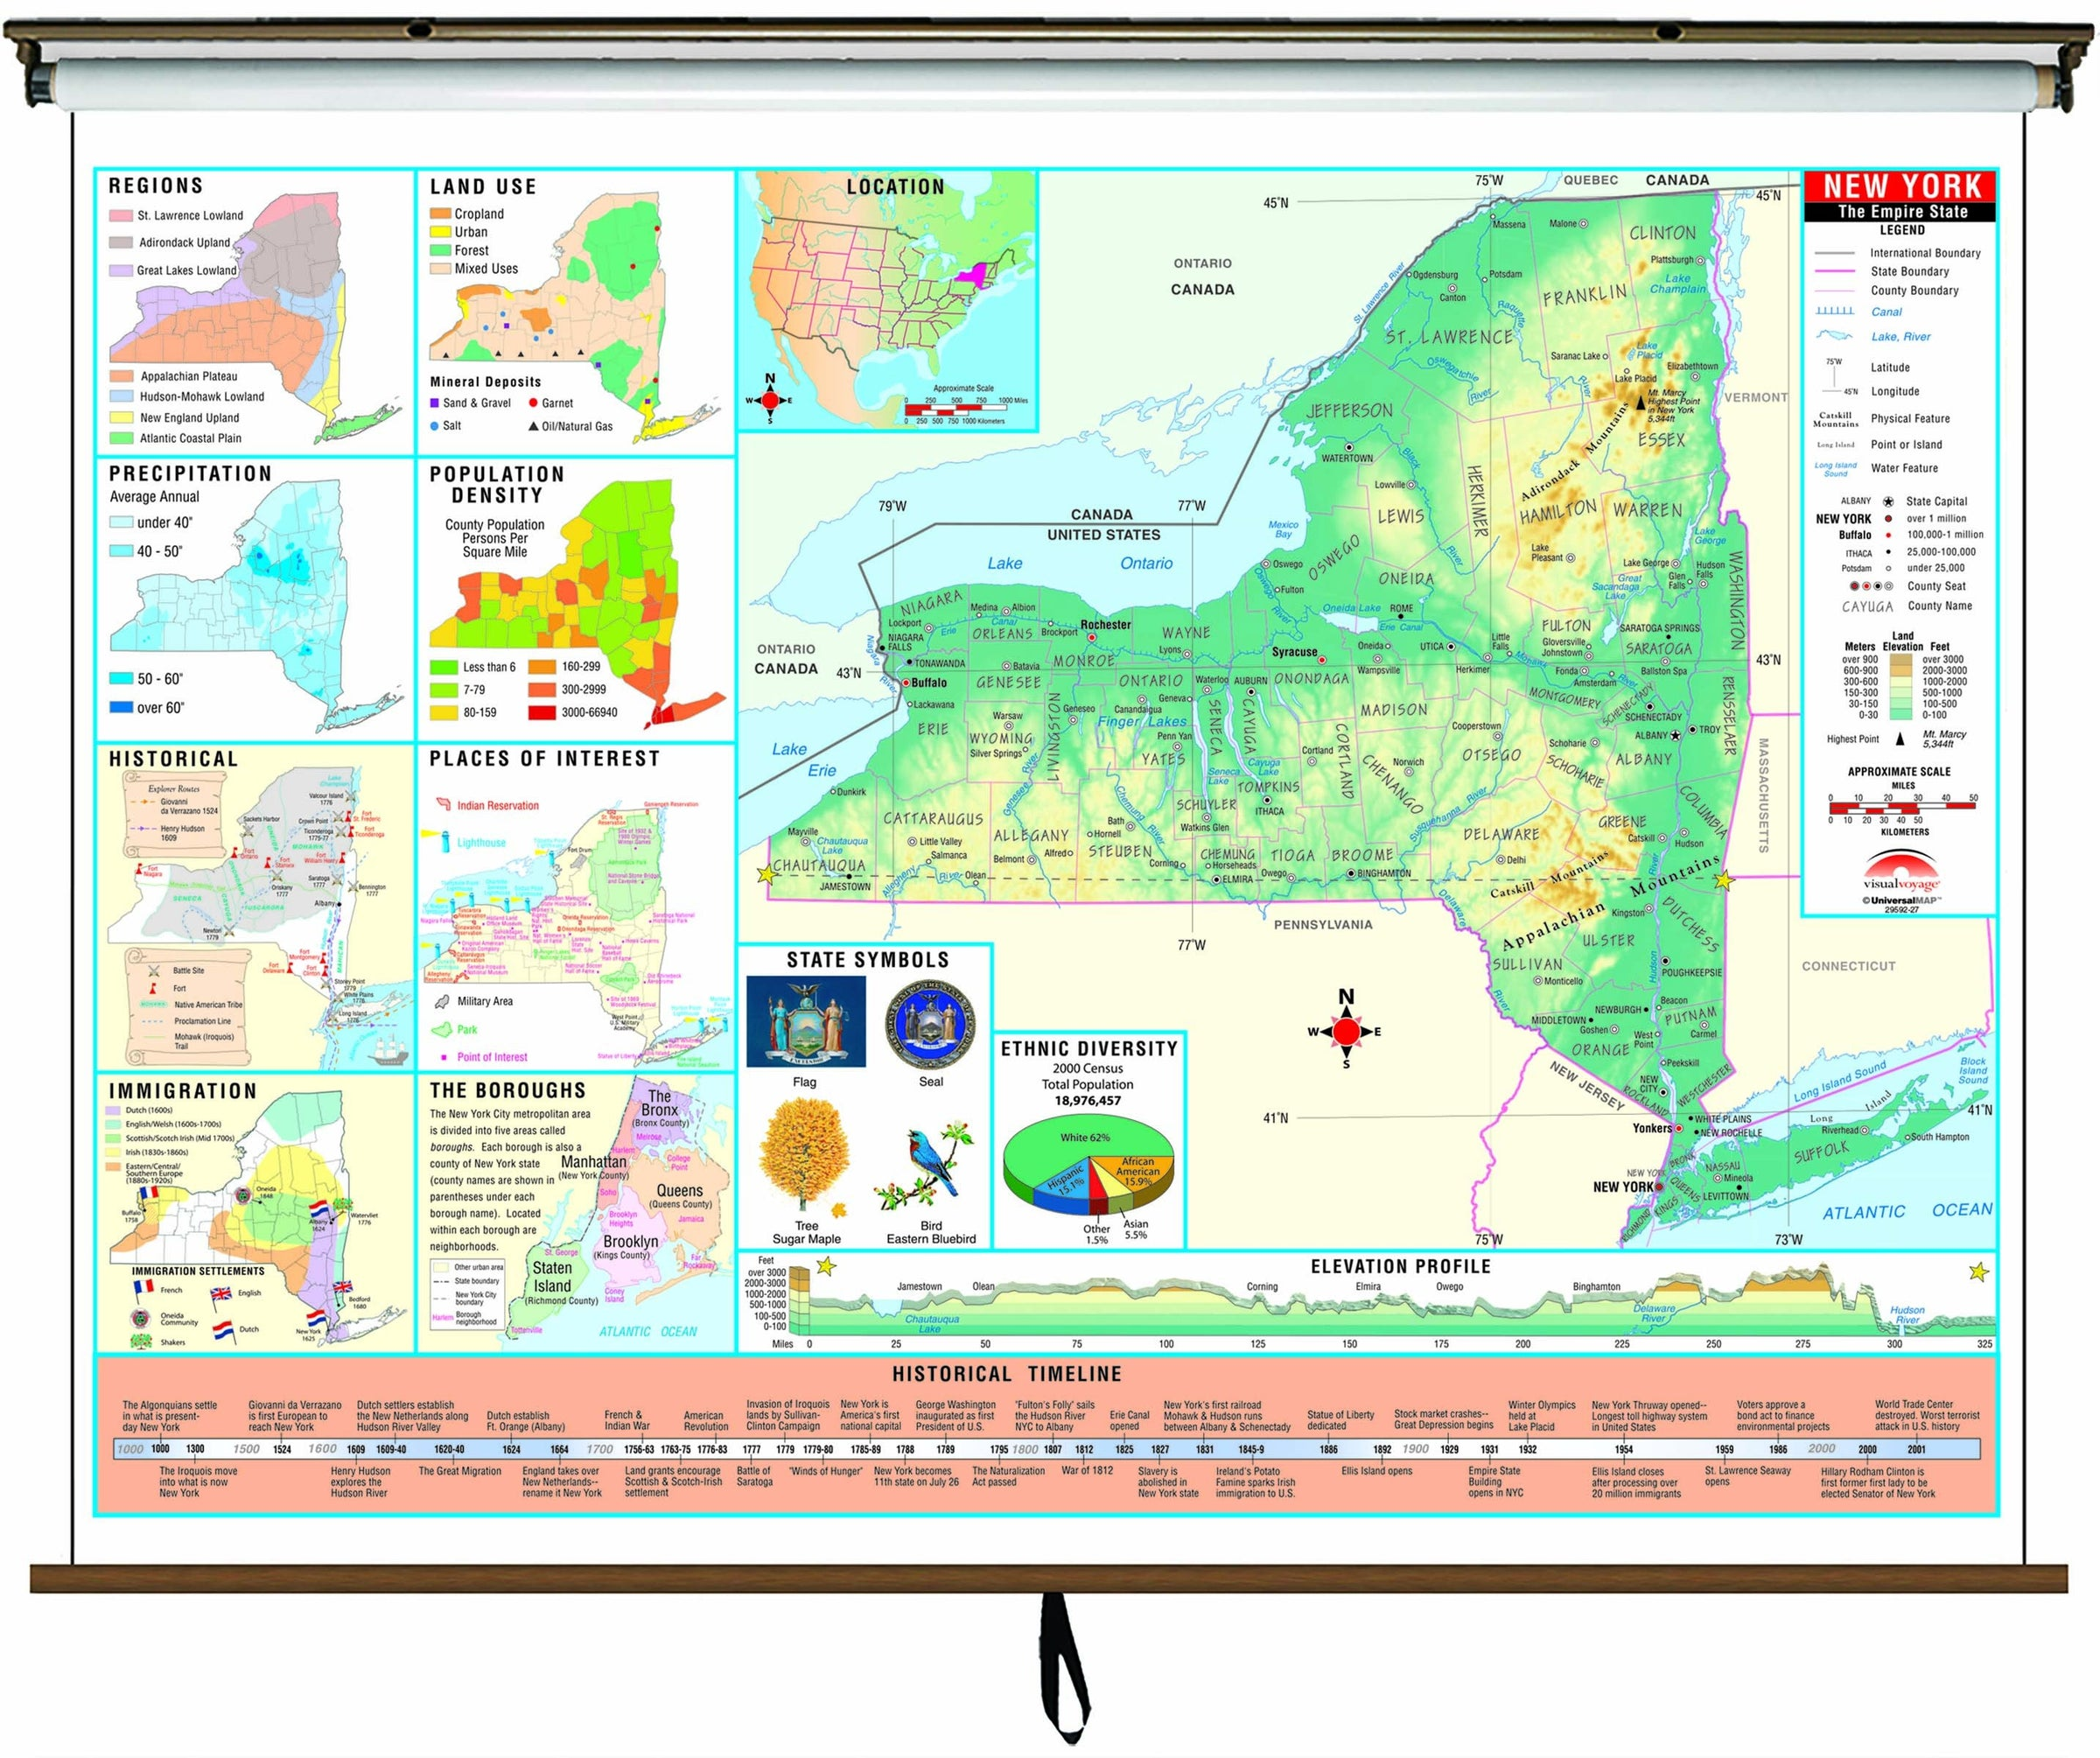 New York State Intermediate Thematic Wall Map on Roller w/ Backboard